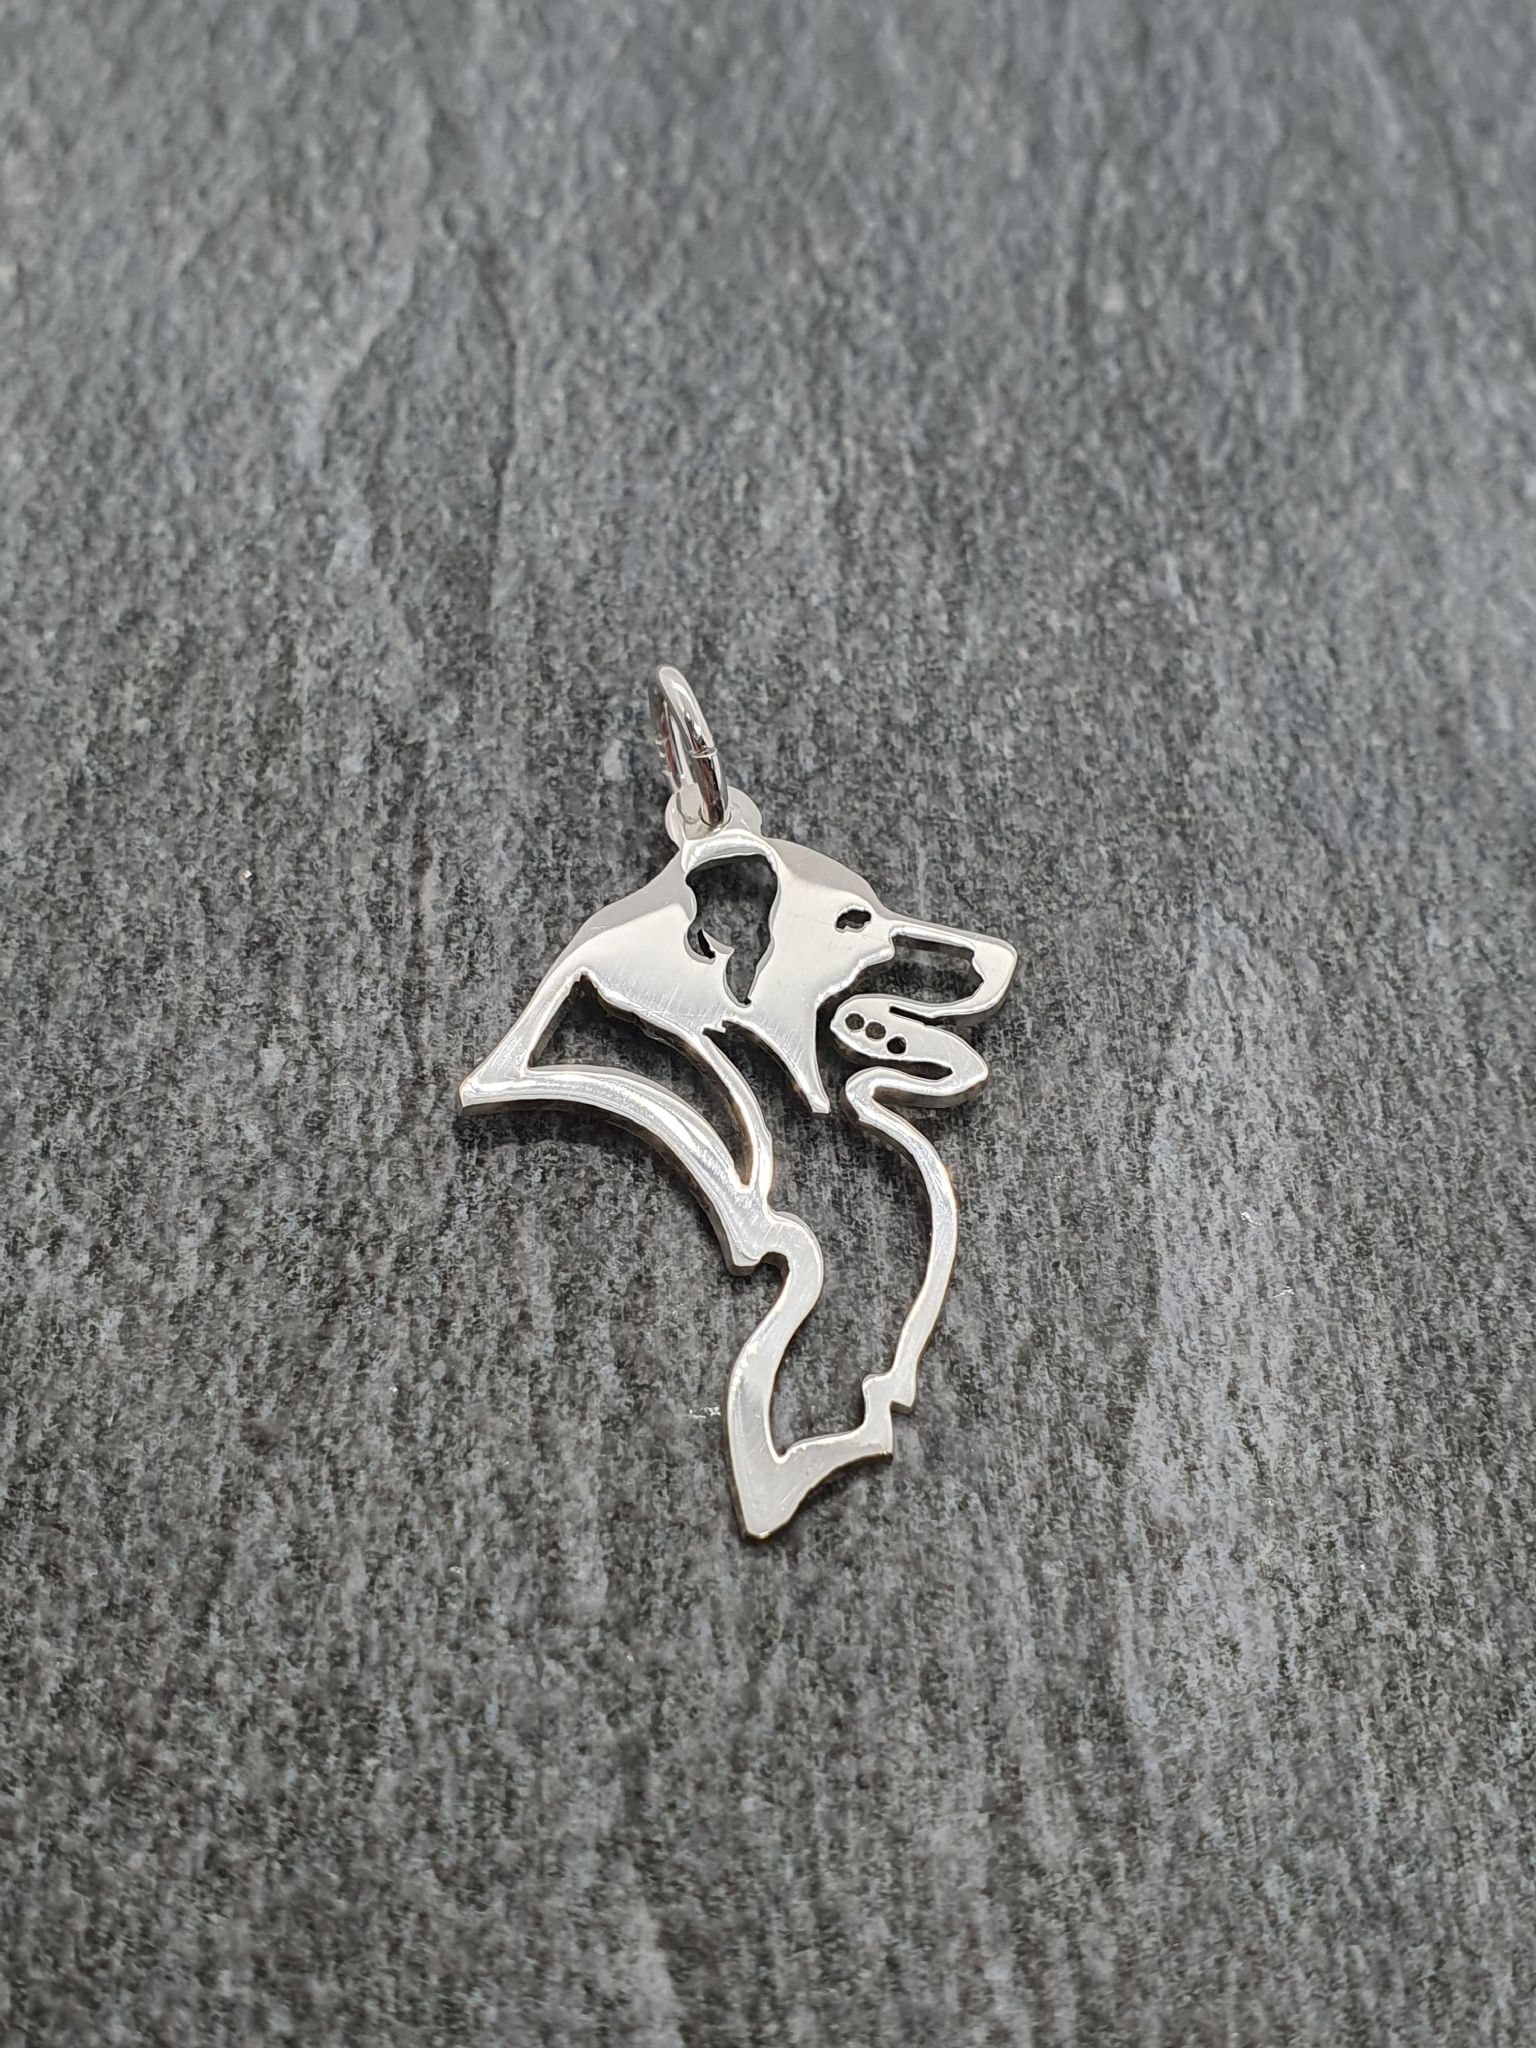 Border Collie profile pendant sterling silver handmade by saw piercing Caroline Howlett Design